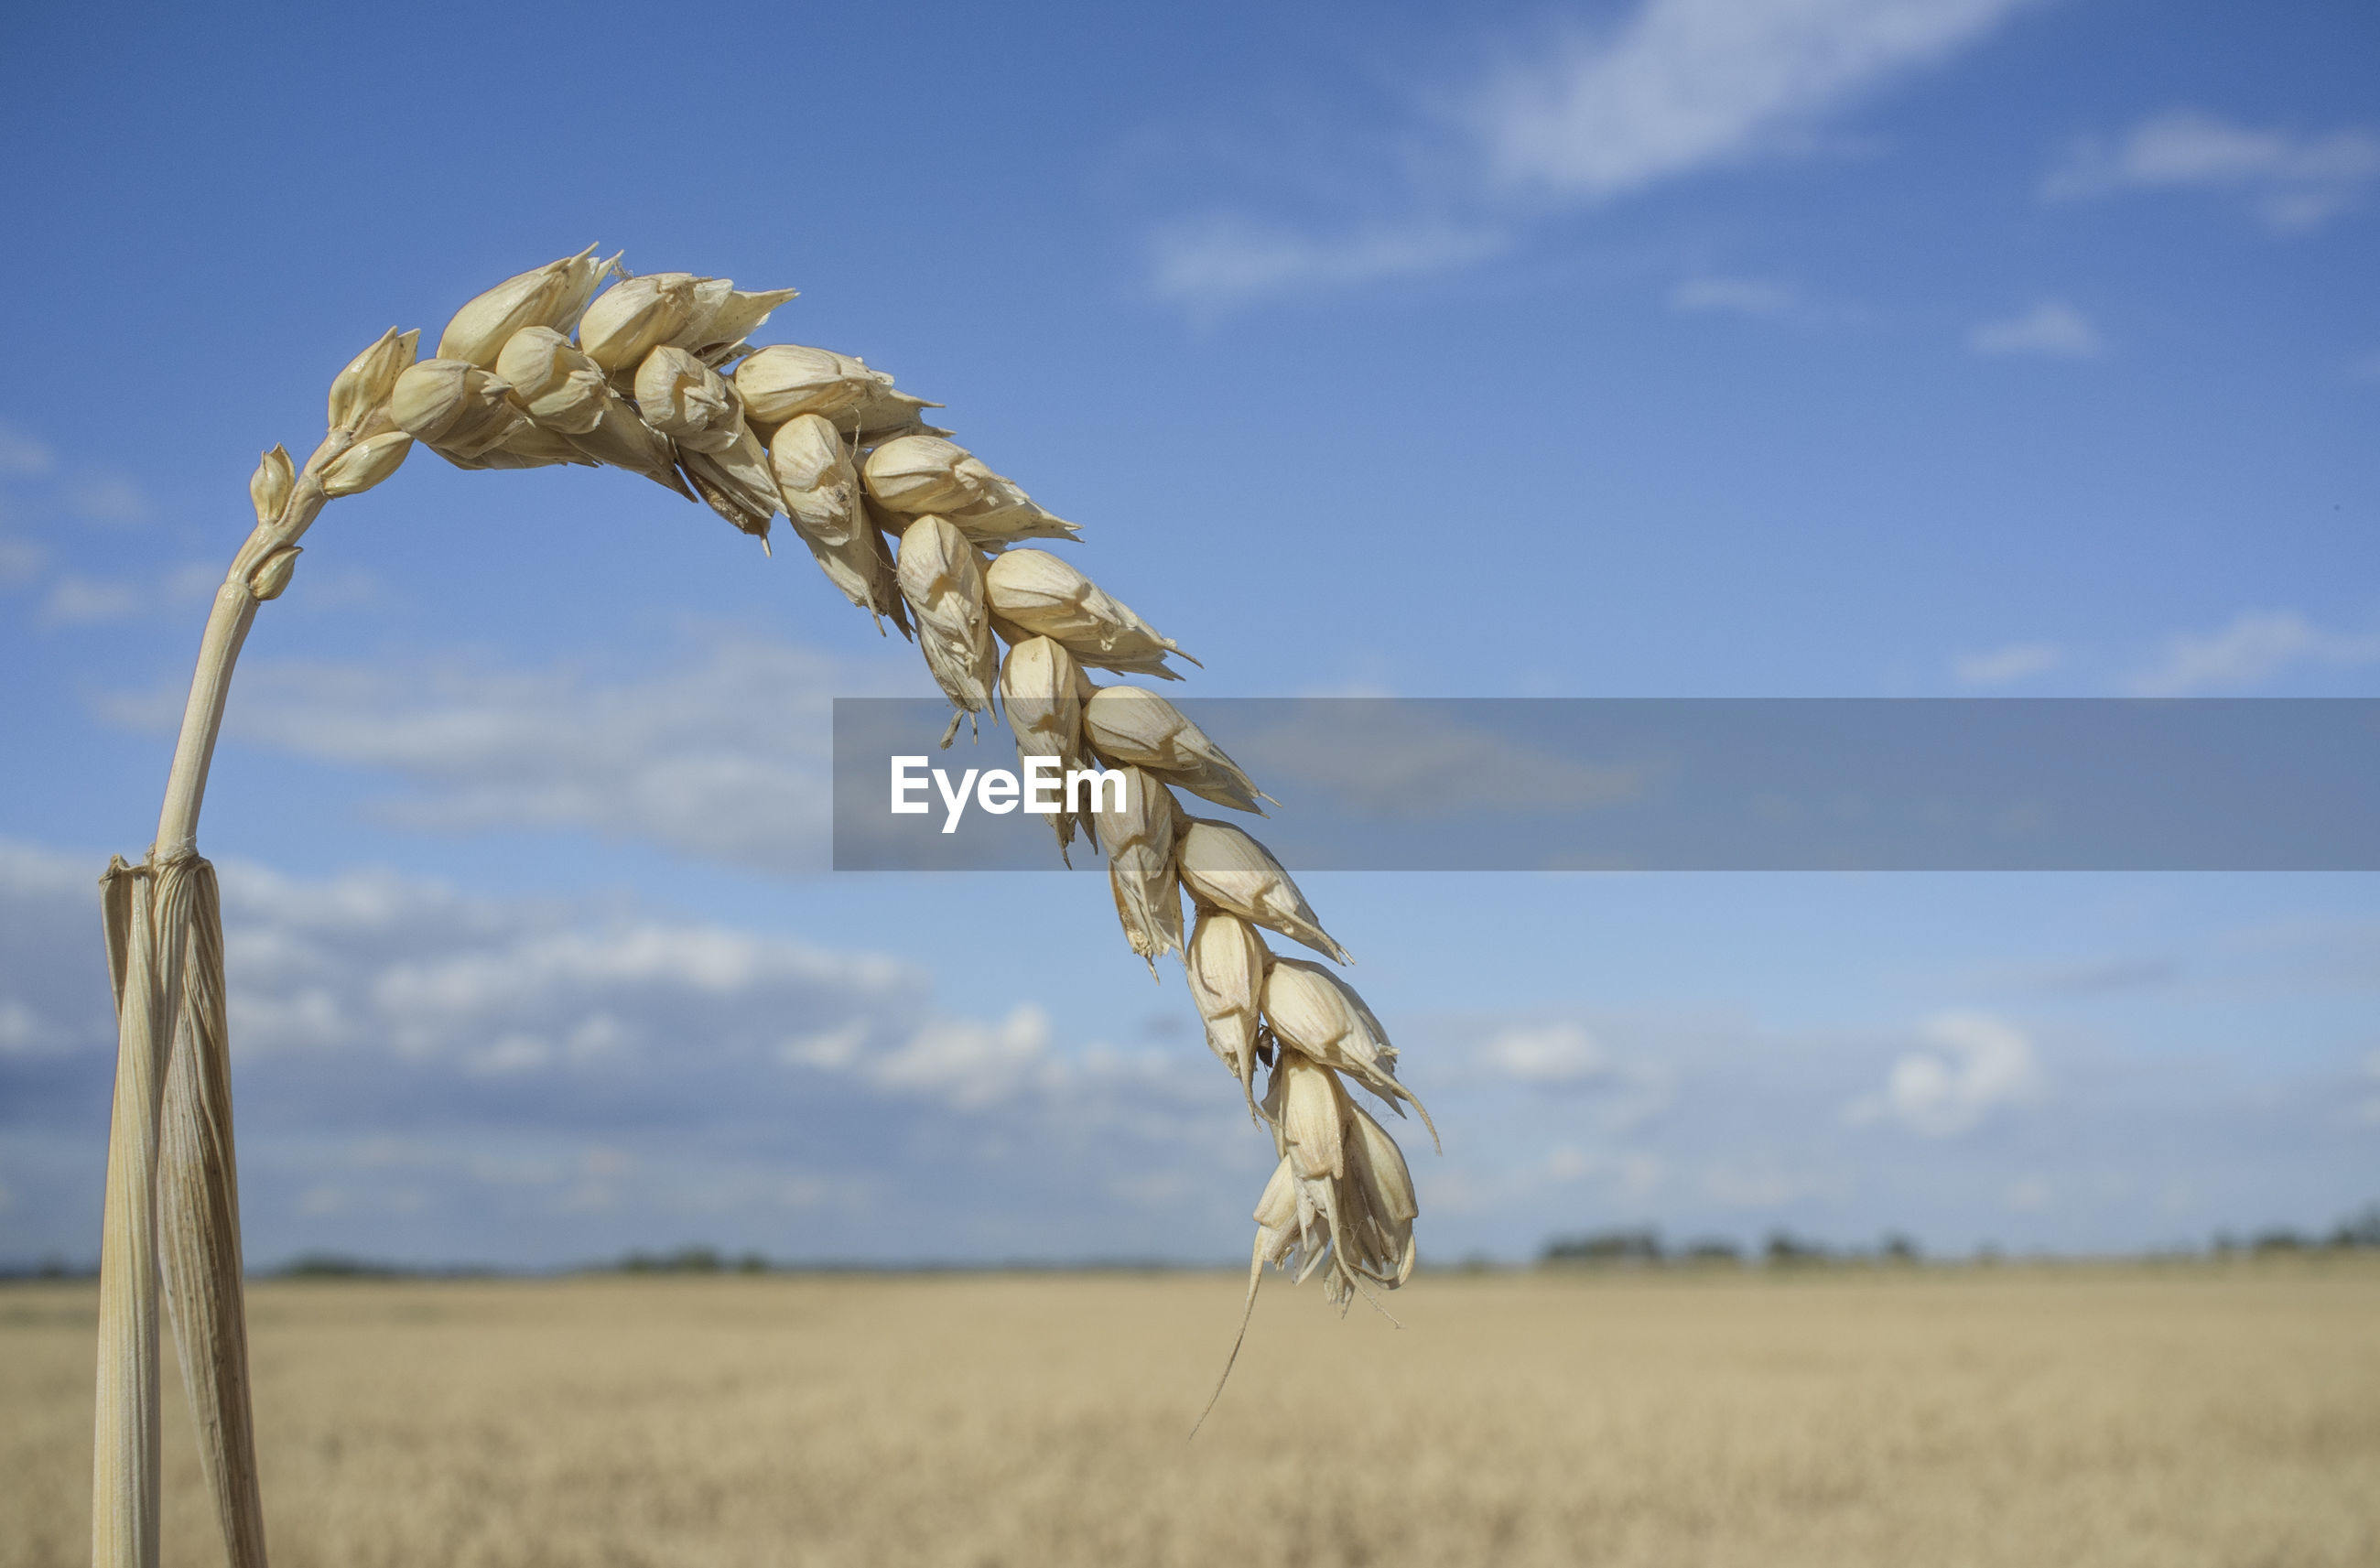 CLOSE-UP OF WHEAT CROP ON FIELD